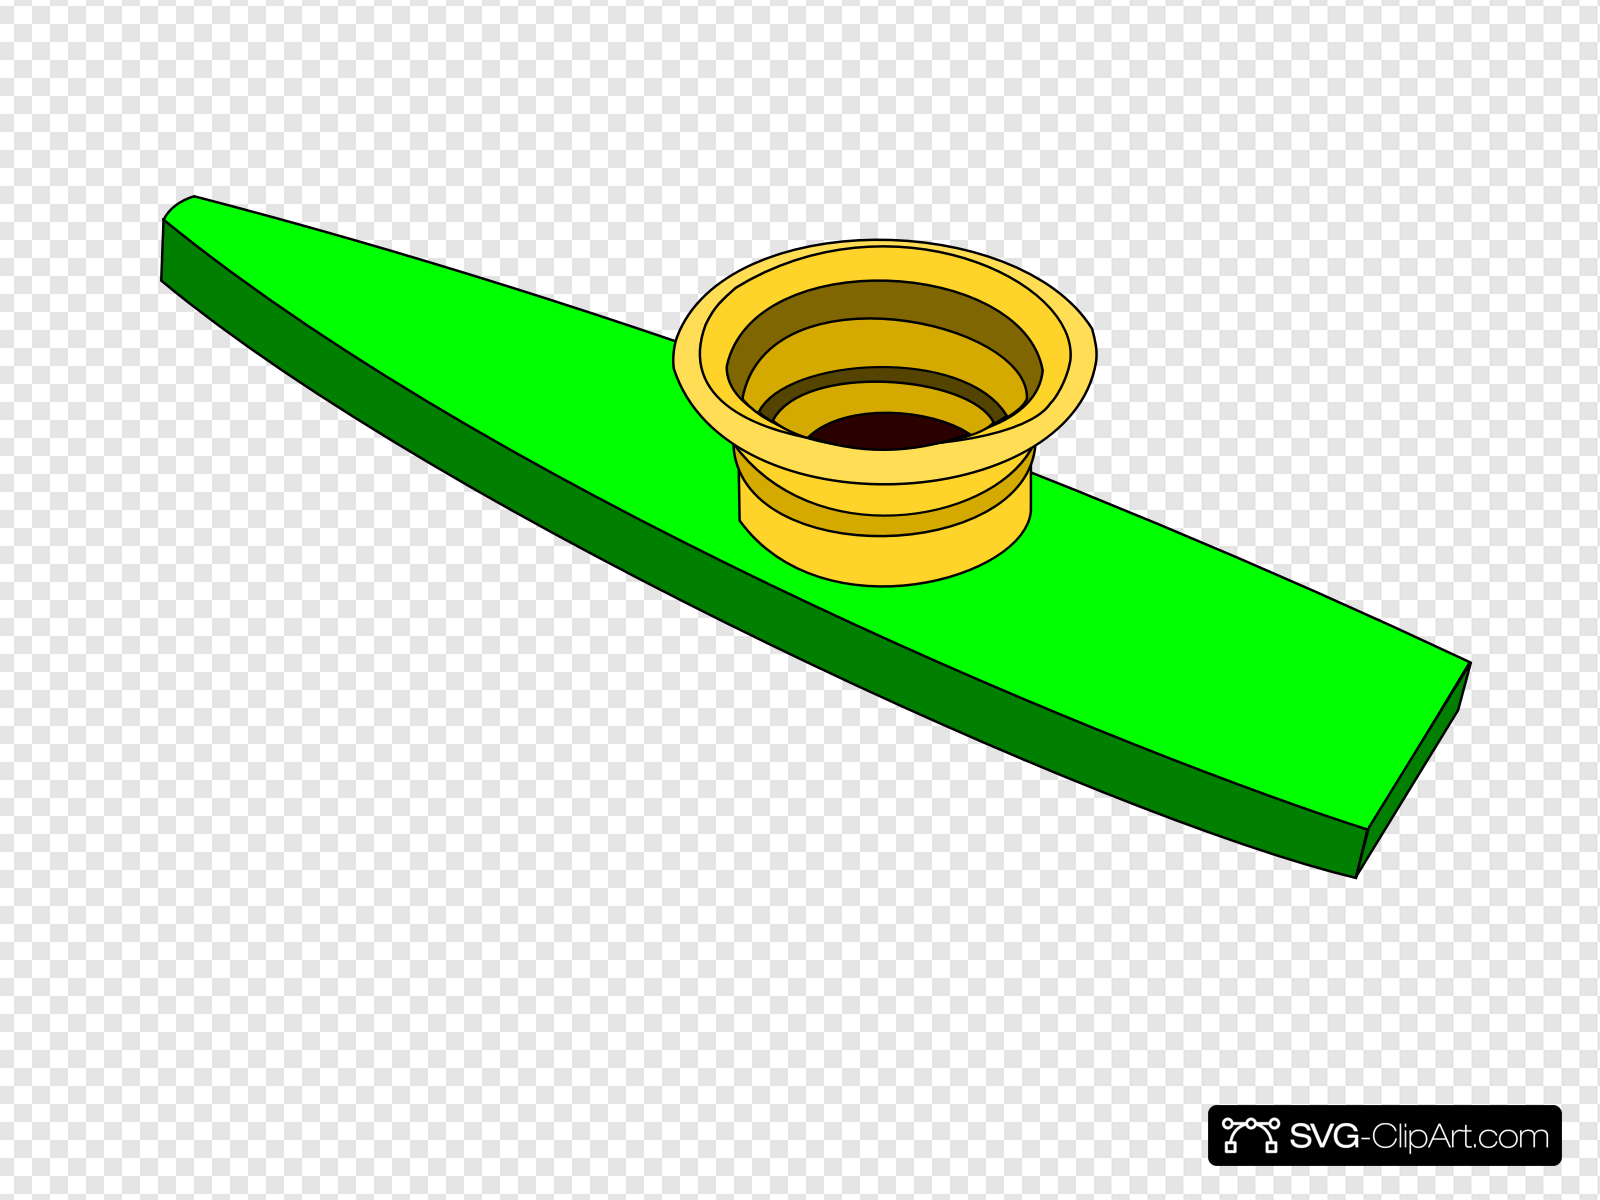 Green Kazoo Clip art, Icon and SVG.